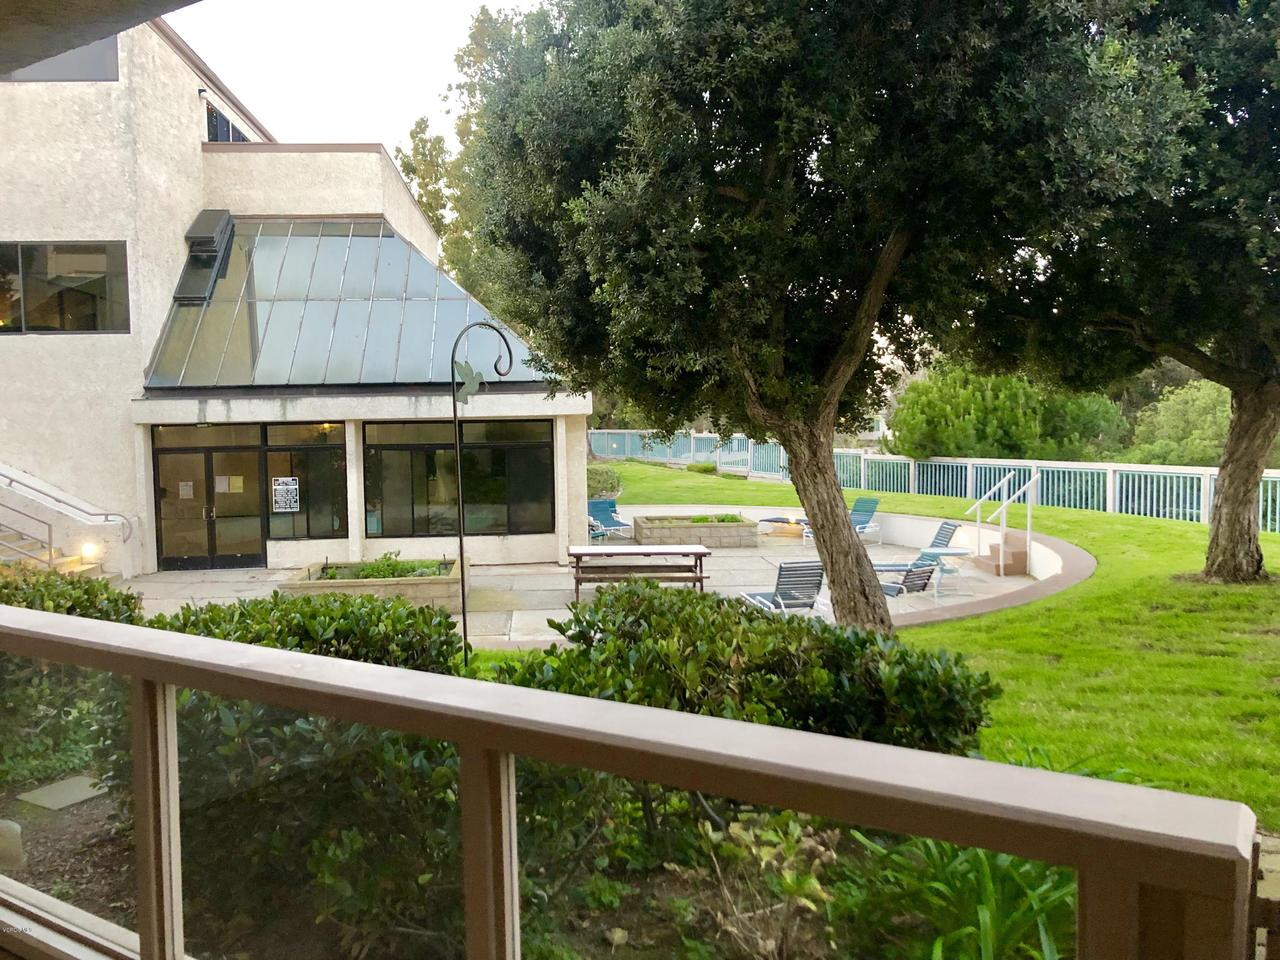 707 ISLAND VIEW, Port Hueneme, CA 93041 - CLUBHOUSE WITH POOL VIEW